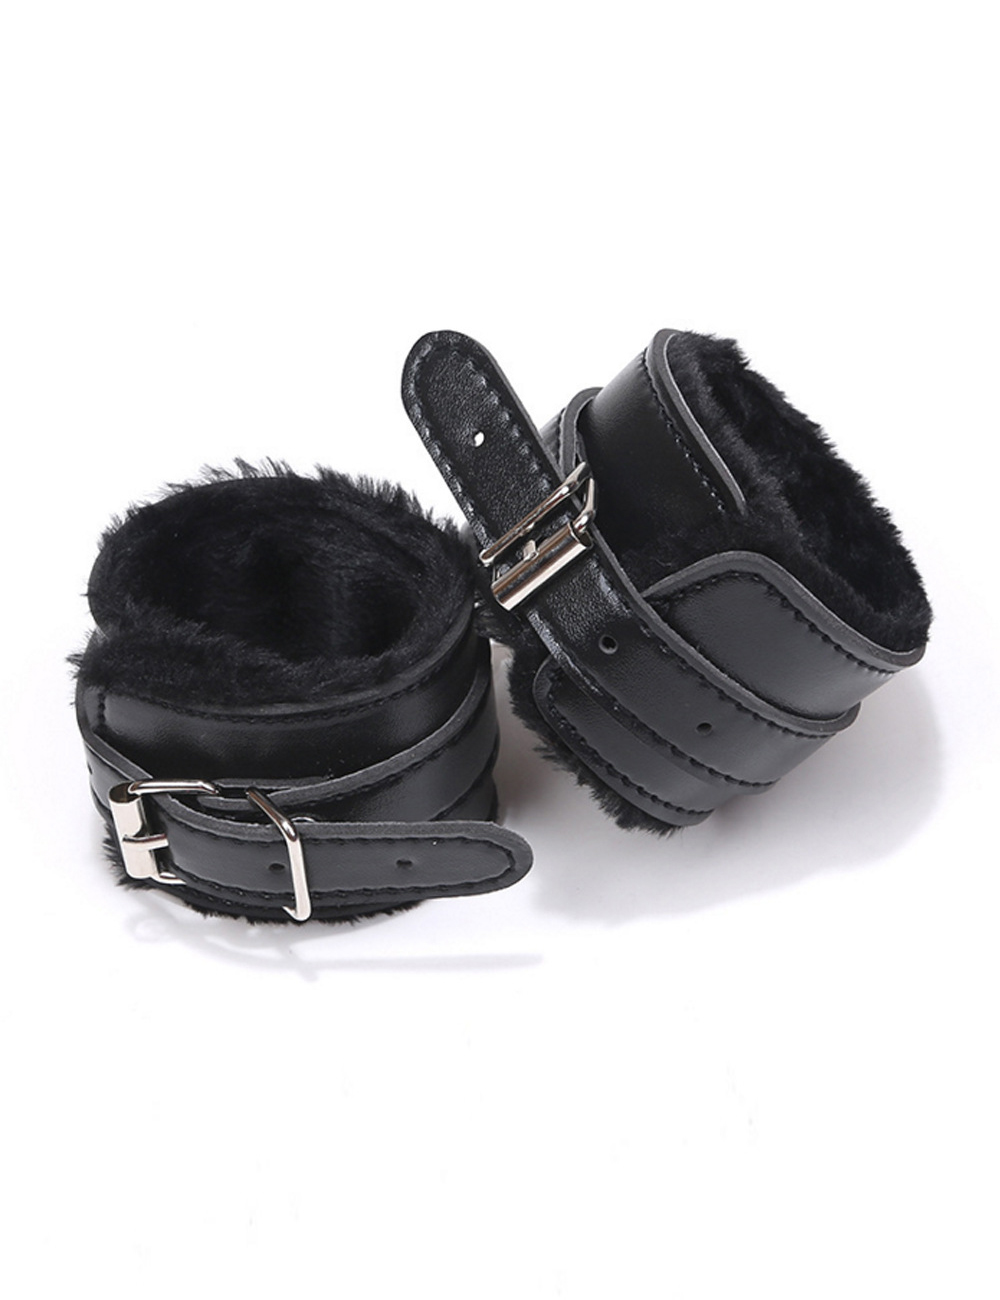 Black Faux Leather Cuffs Faux Fur Lined 80726 Edmonton